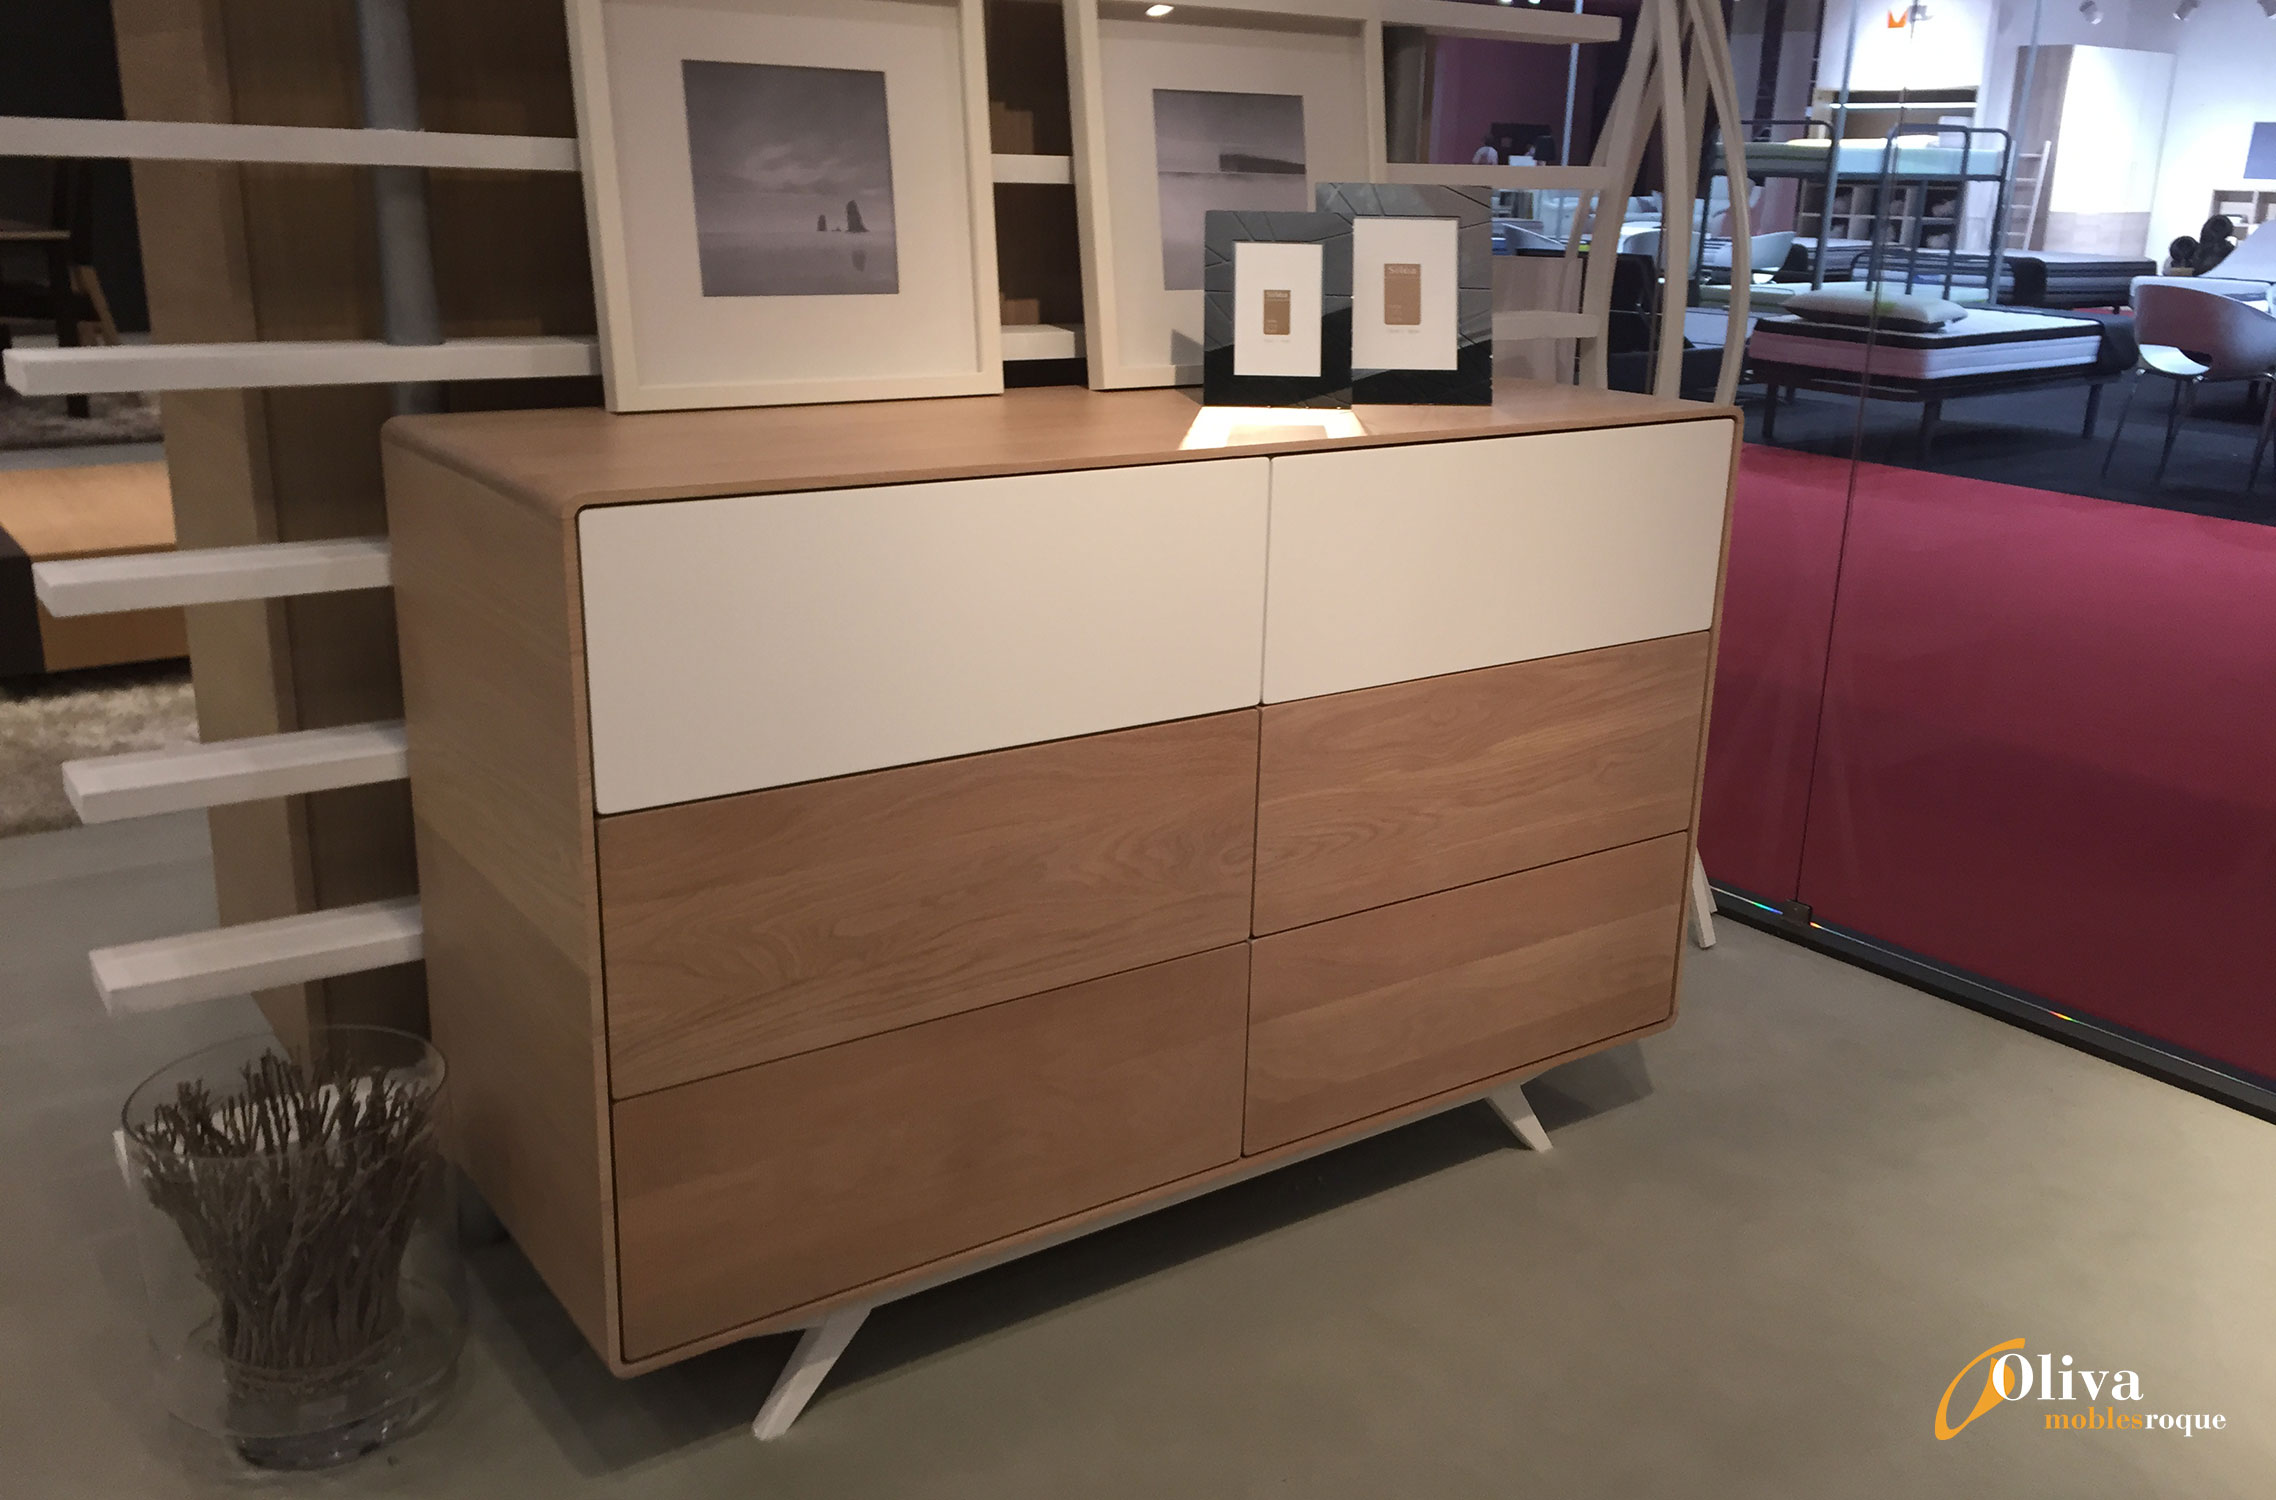 Showroom del mueble barcelona 2015 for Muebles modernos barcelona